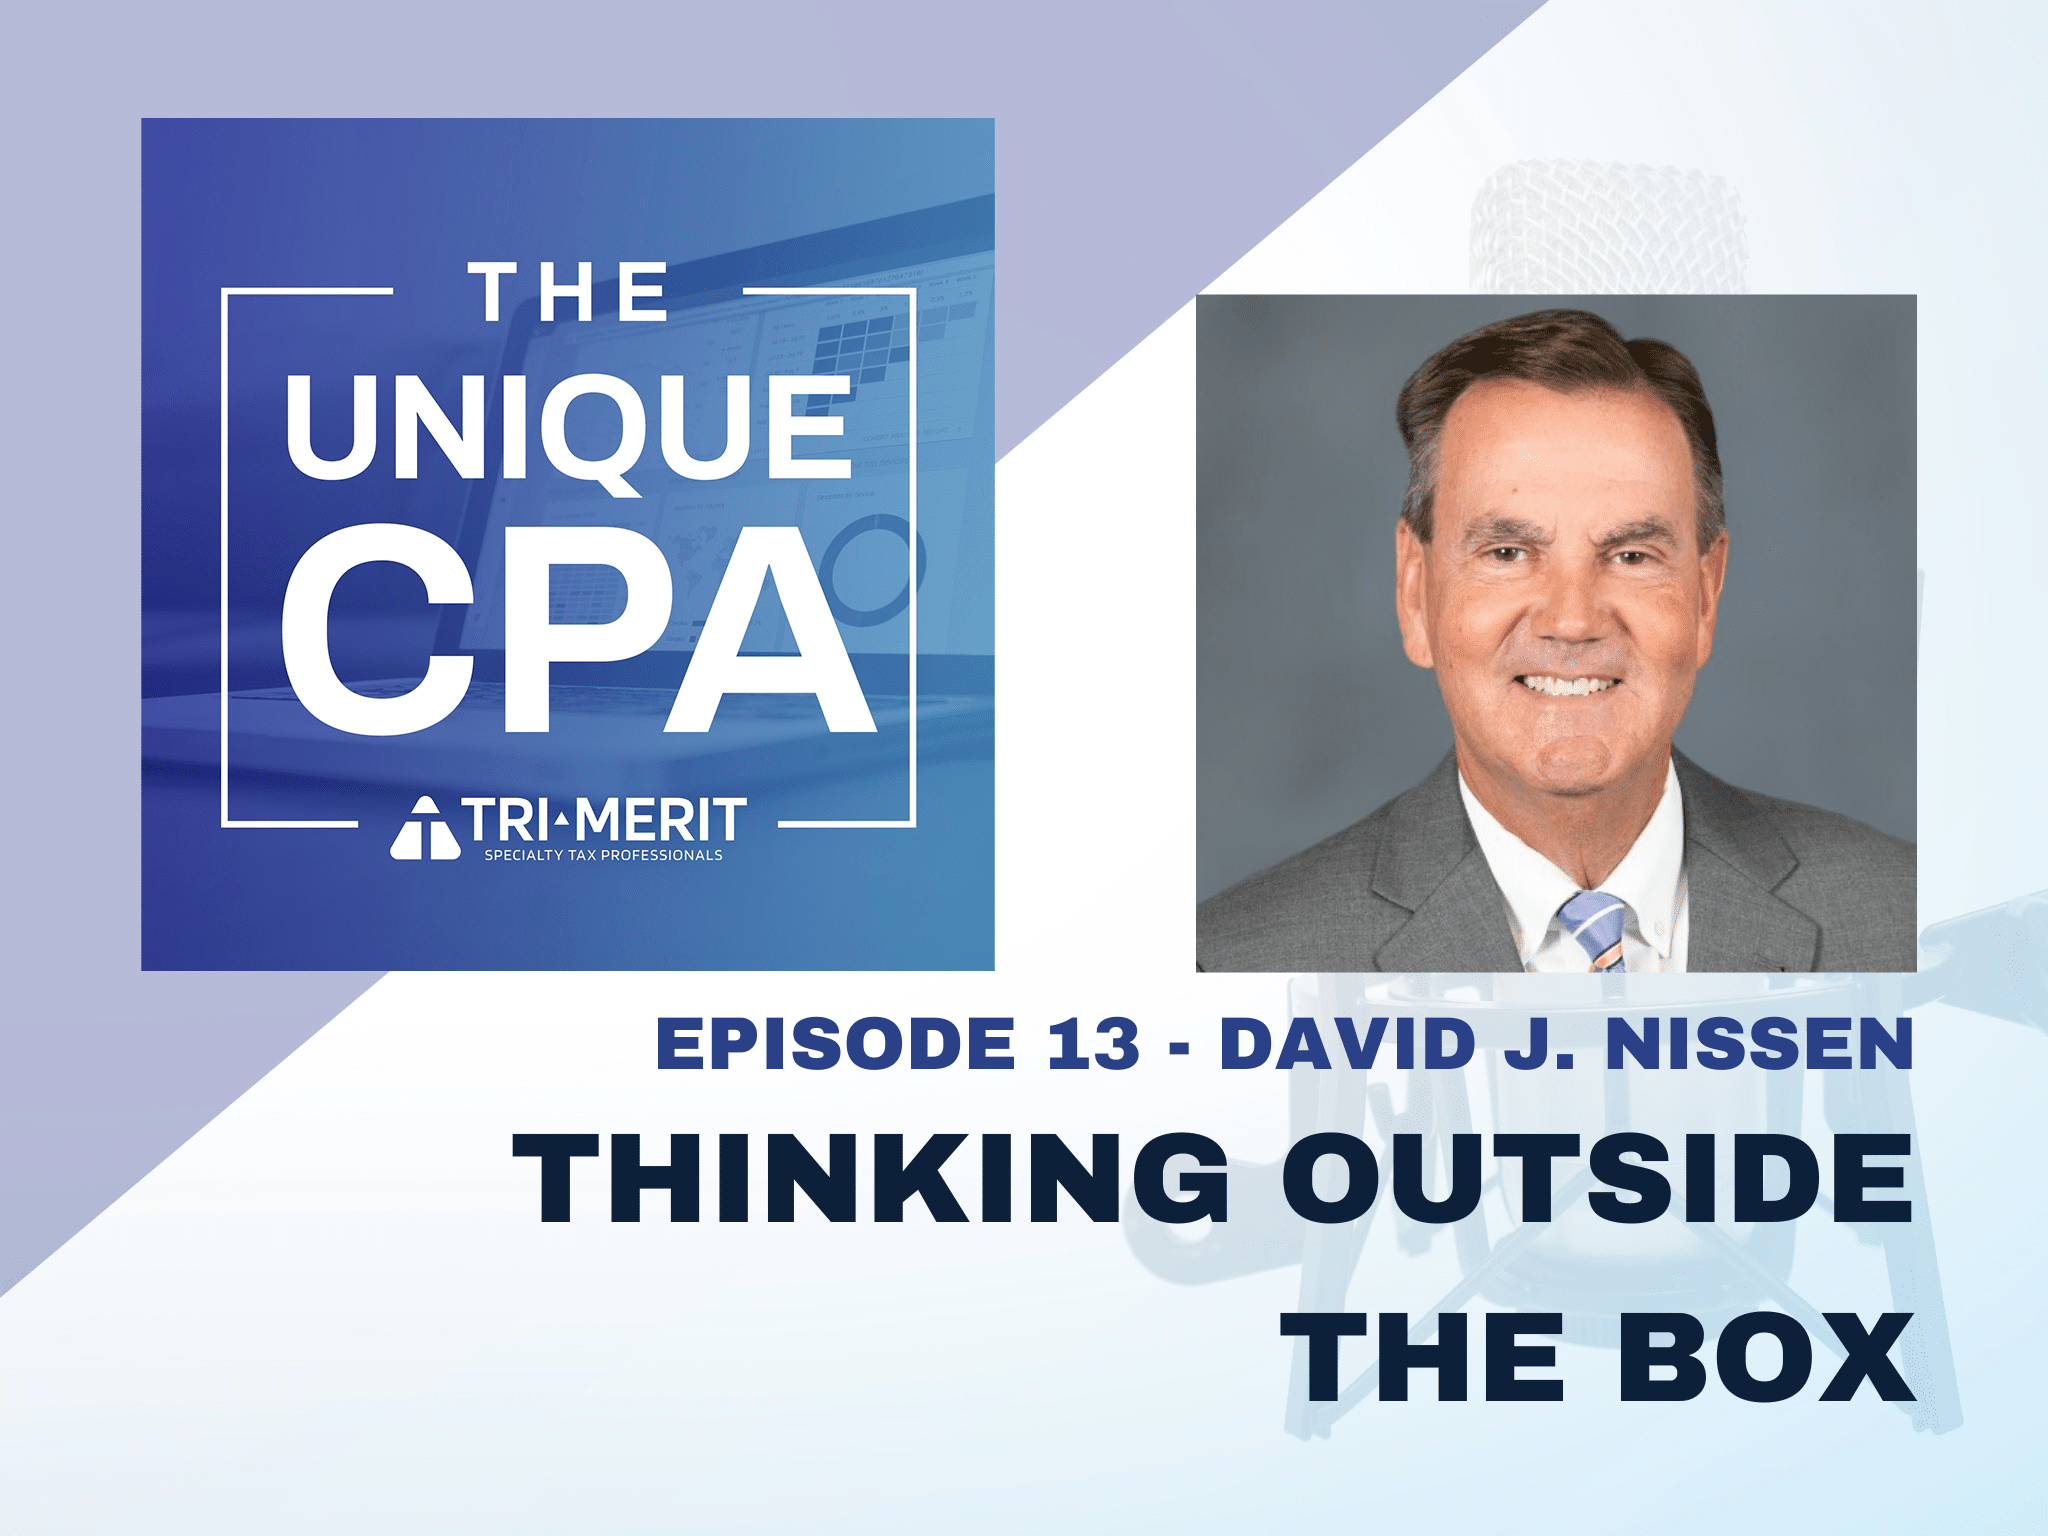 The Unique CPA Feature Image Ep 13 - Thinking Outside the Box - Tri-Merit